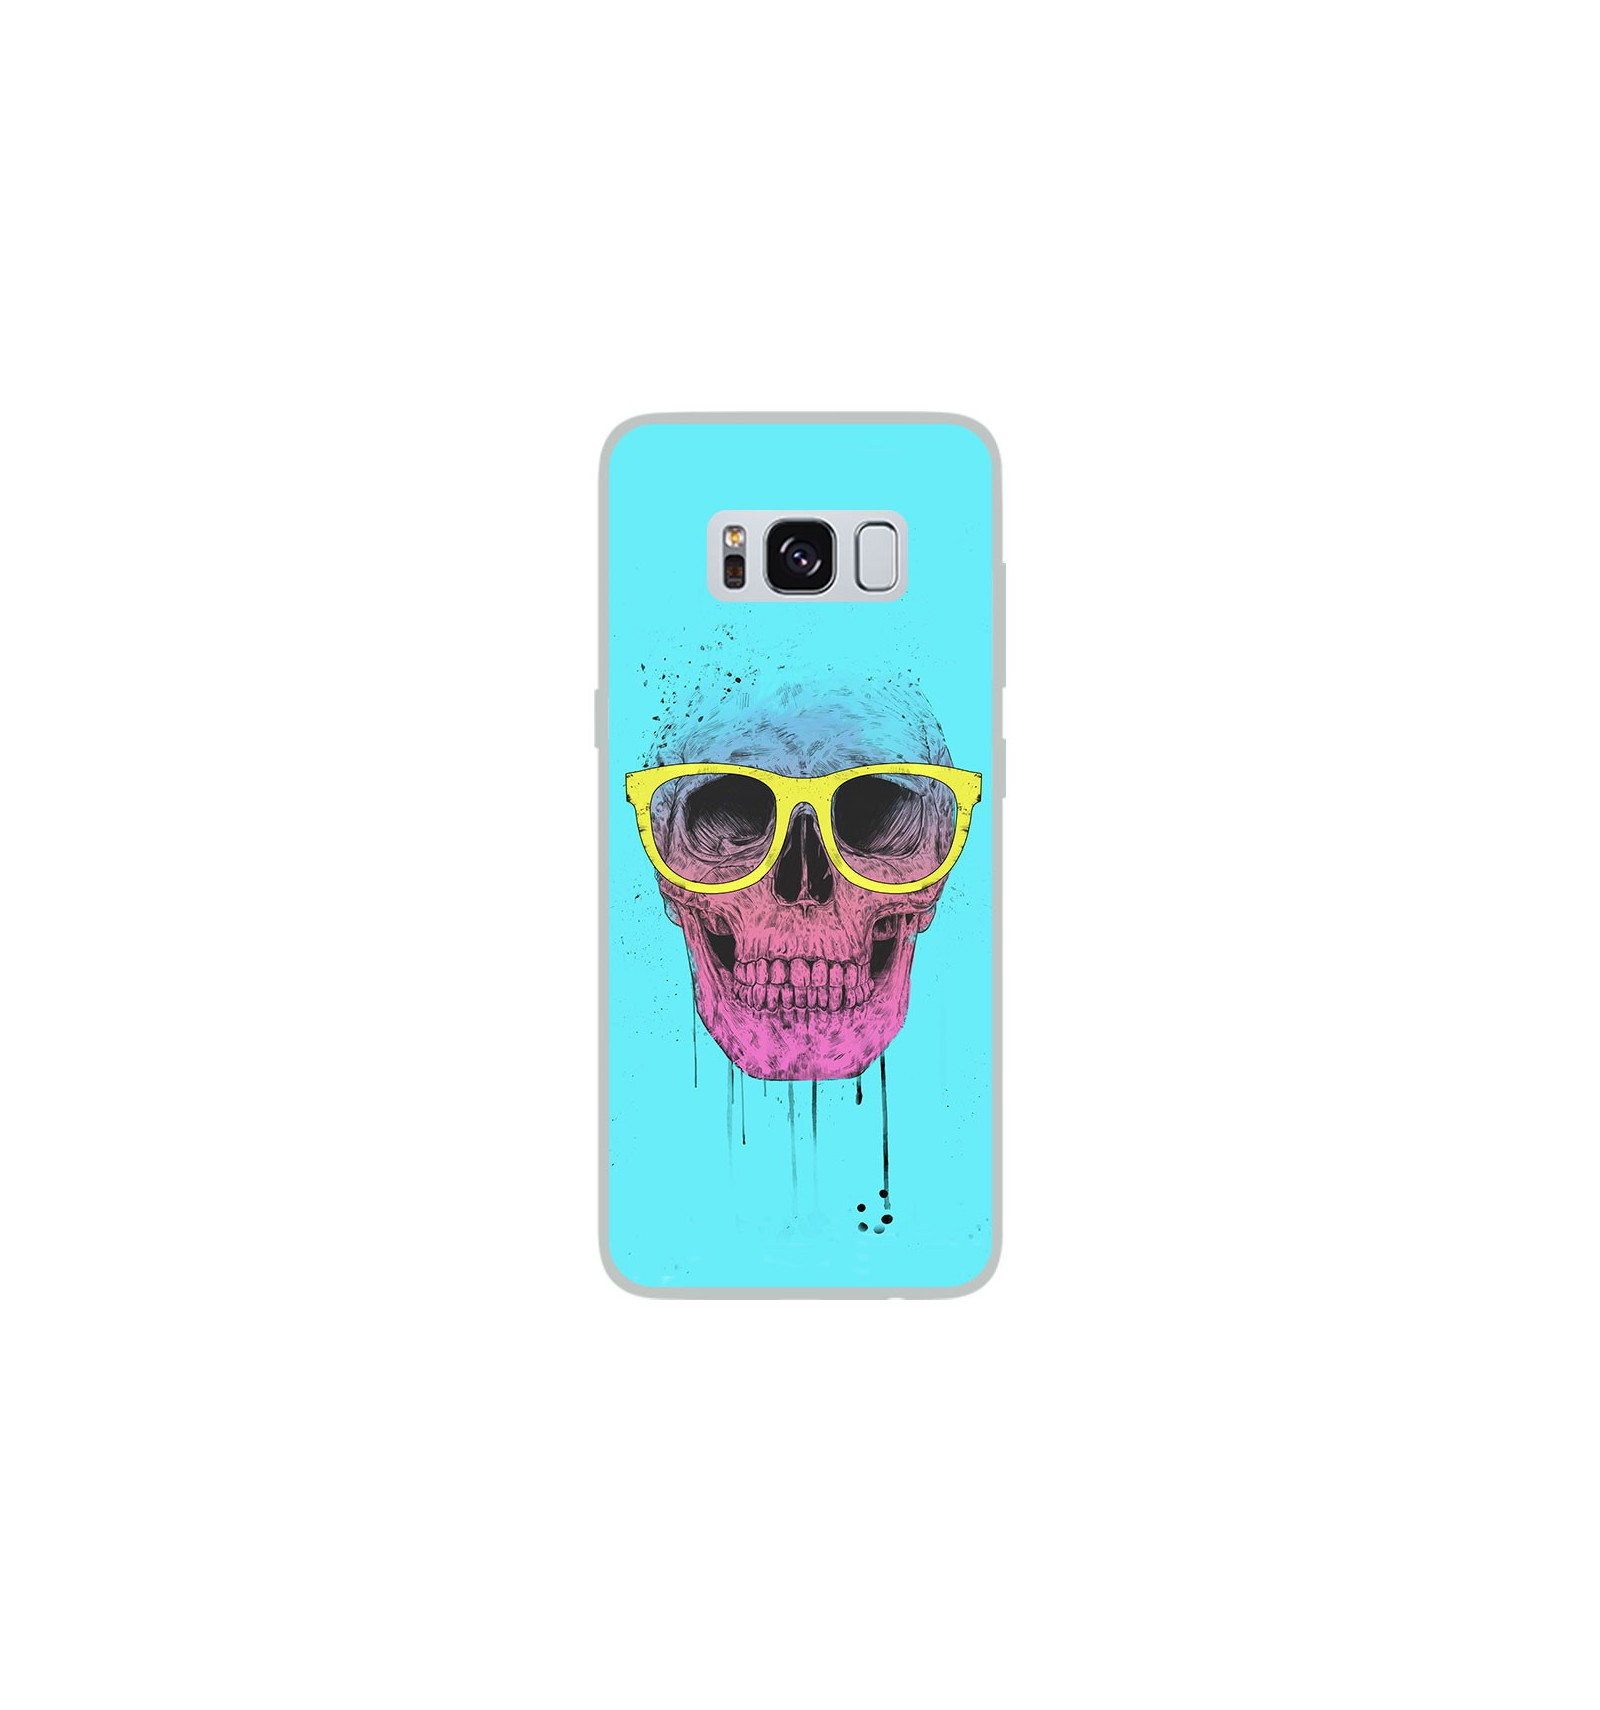 coque en silicone samsung galaxy s8 bs skull glasses. Black Bedroom Furniture Sets. Home Design Ideas